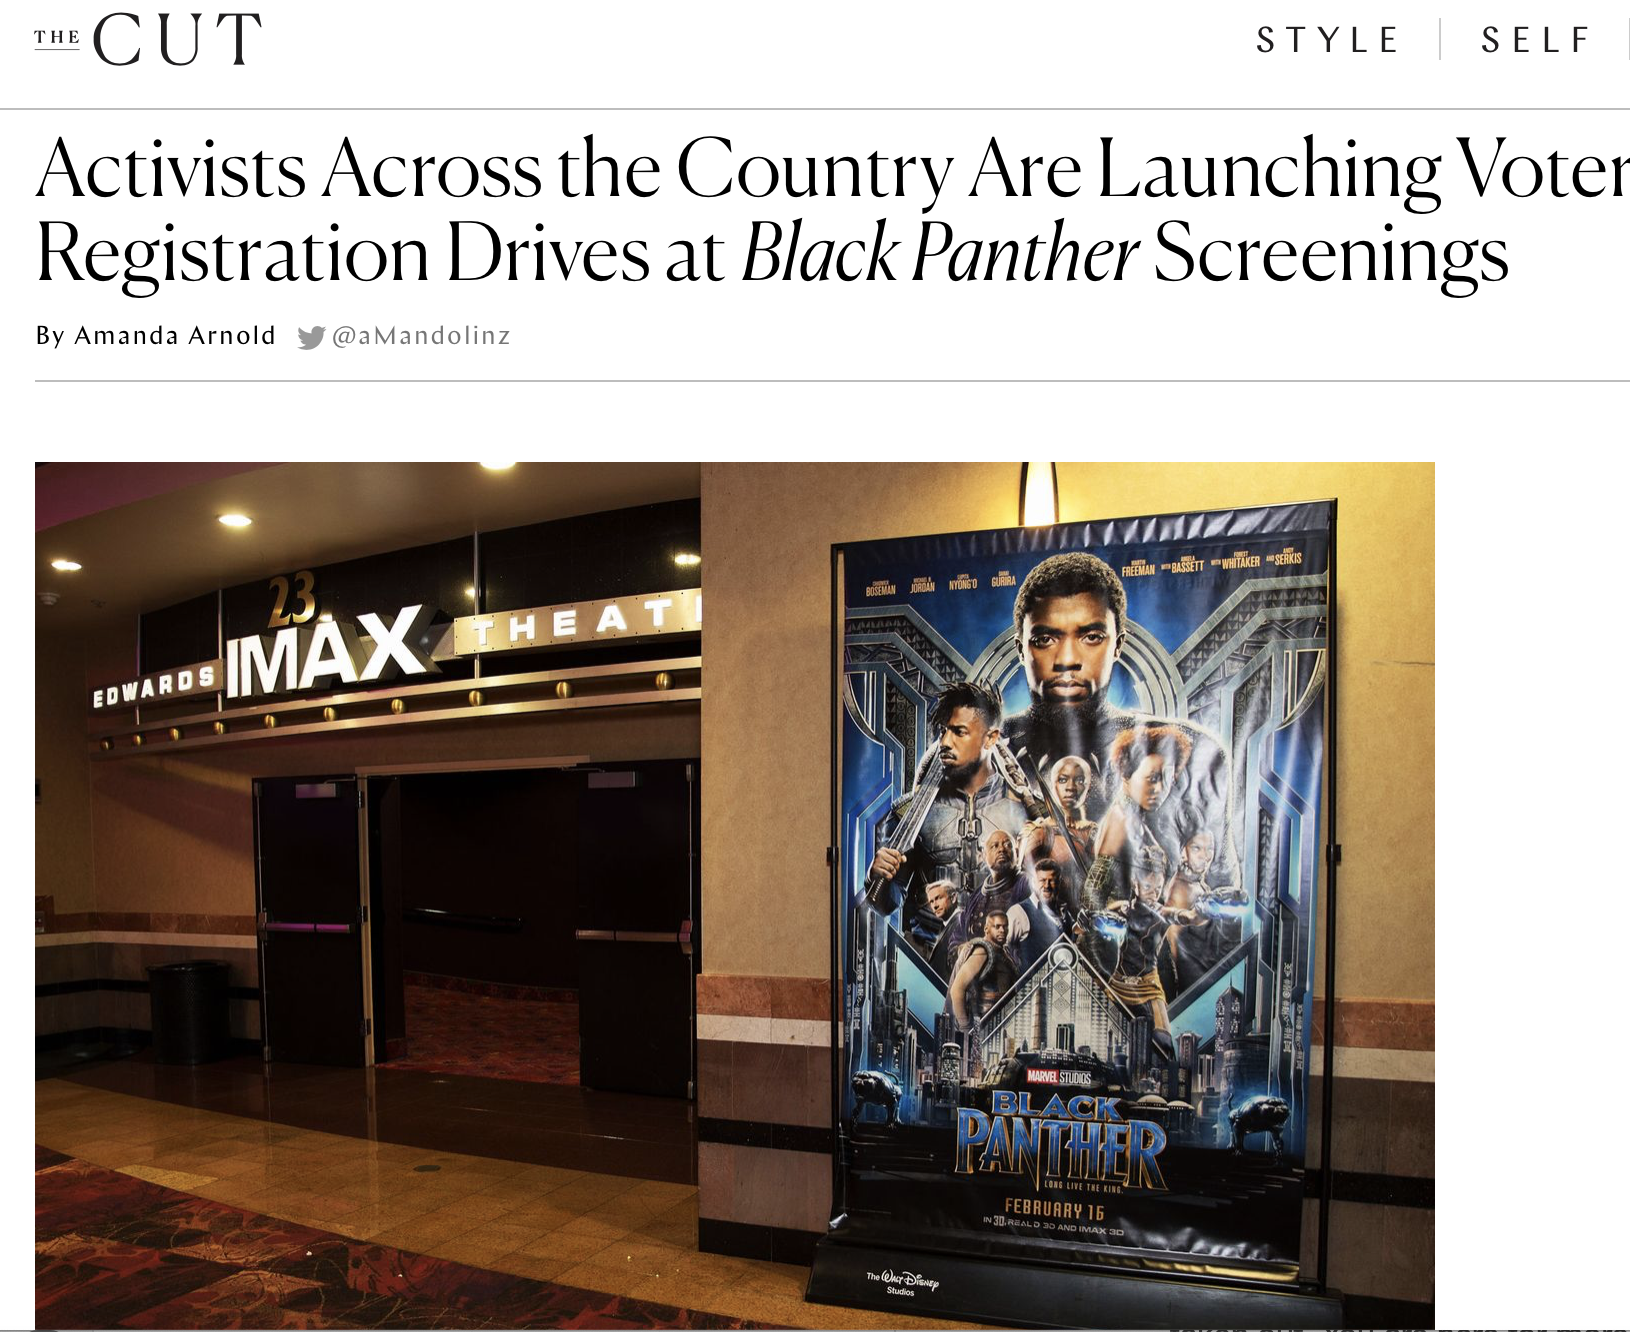 Activists Across the Country Are Launching Voter Registration Drives at Black Panther Screenings